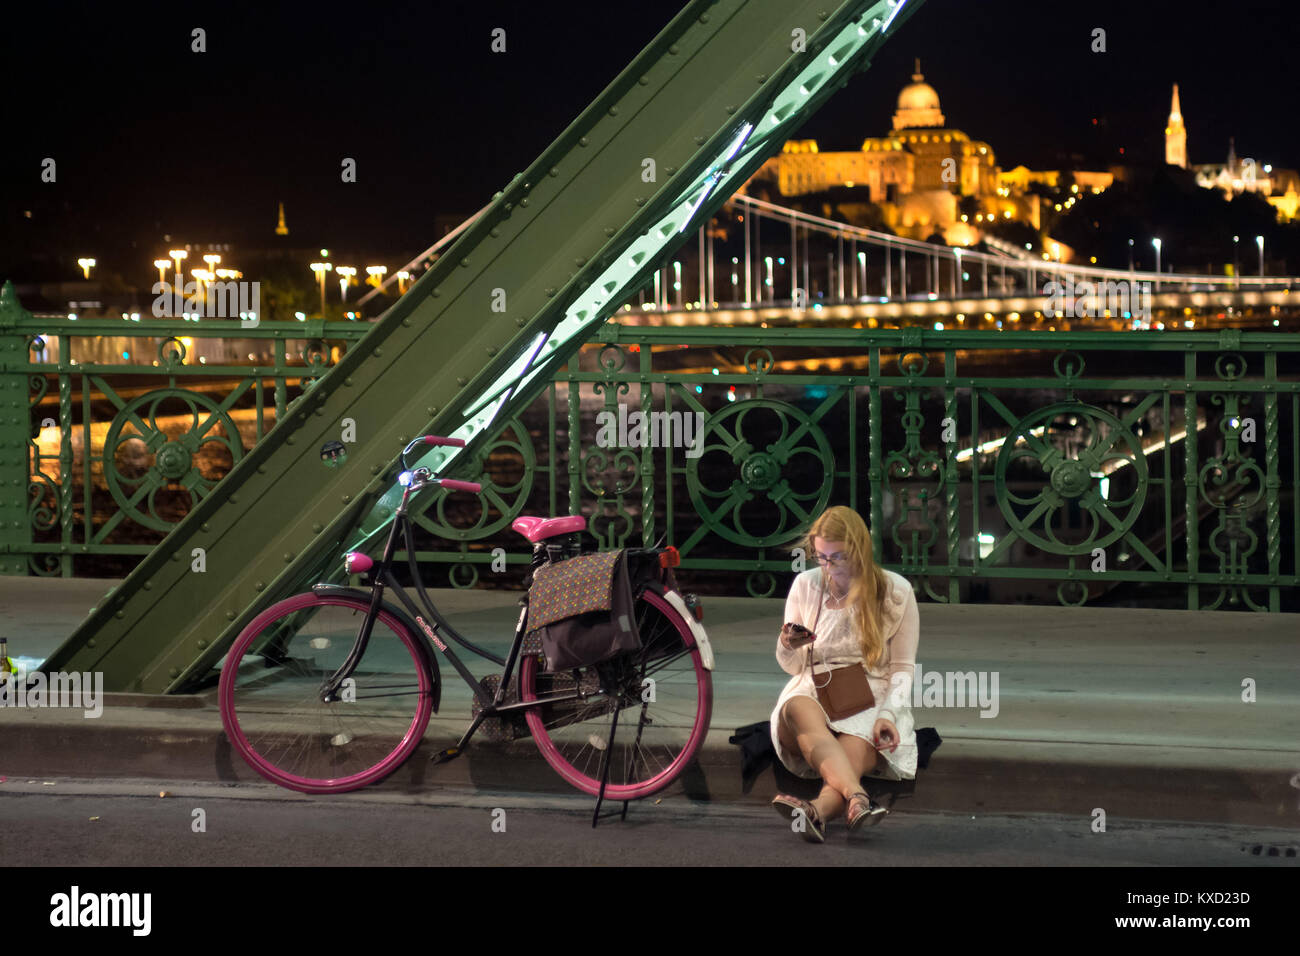 Girl sitting looking at mobile phone screen on sidewalk border beside rose bicycle. Liberty bridge, Budapest - Stock Image